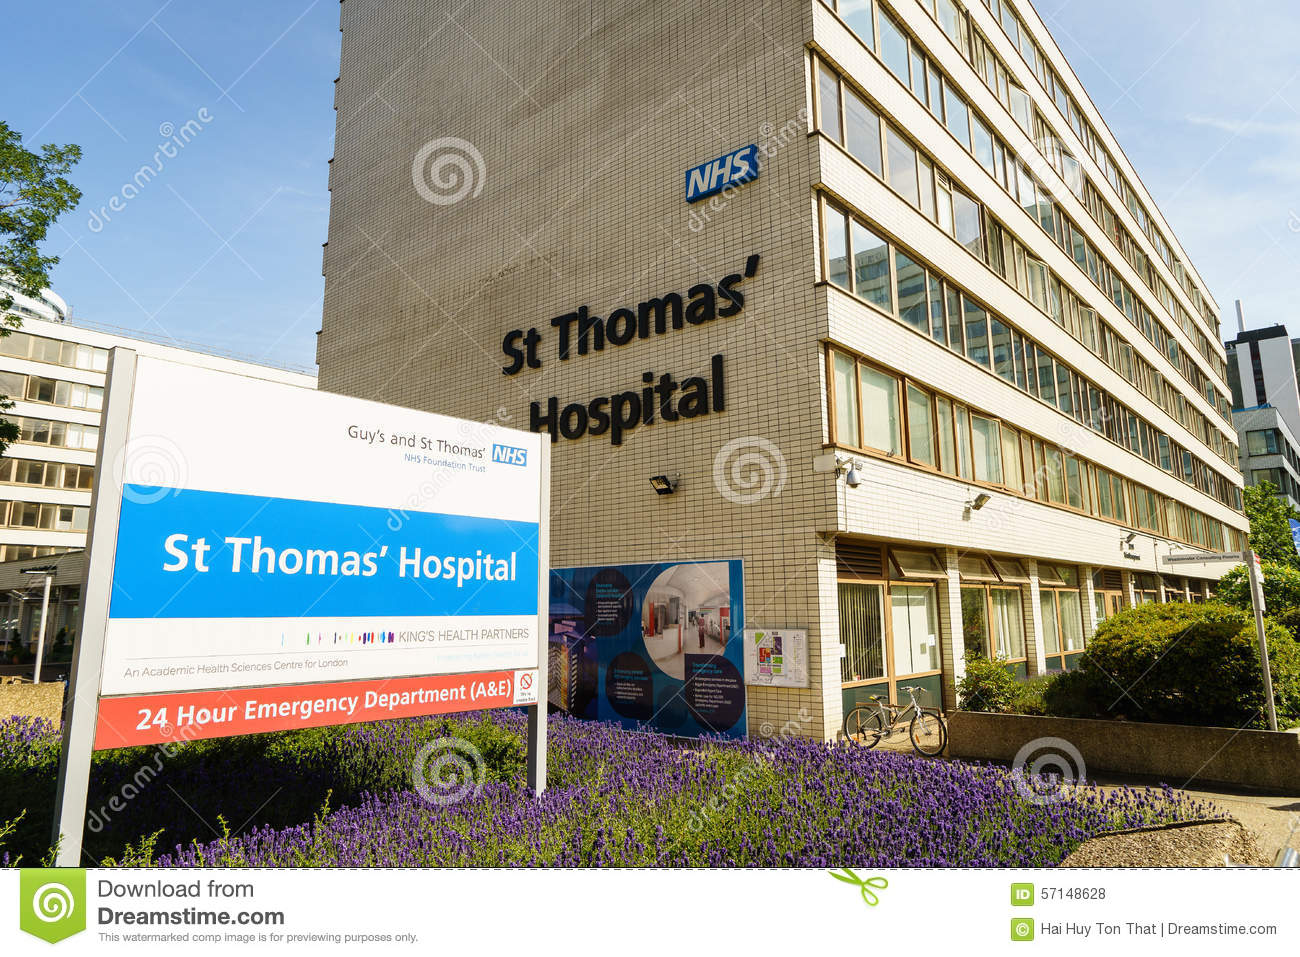 St Thomas Hospital i London